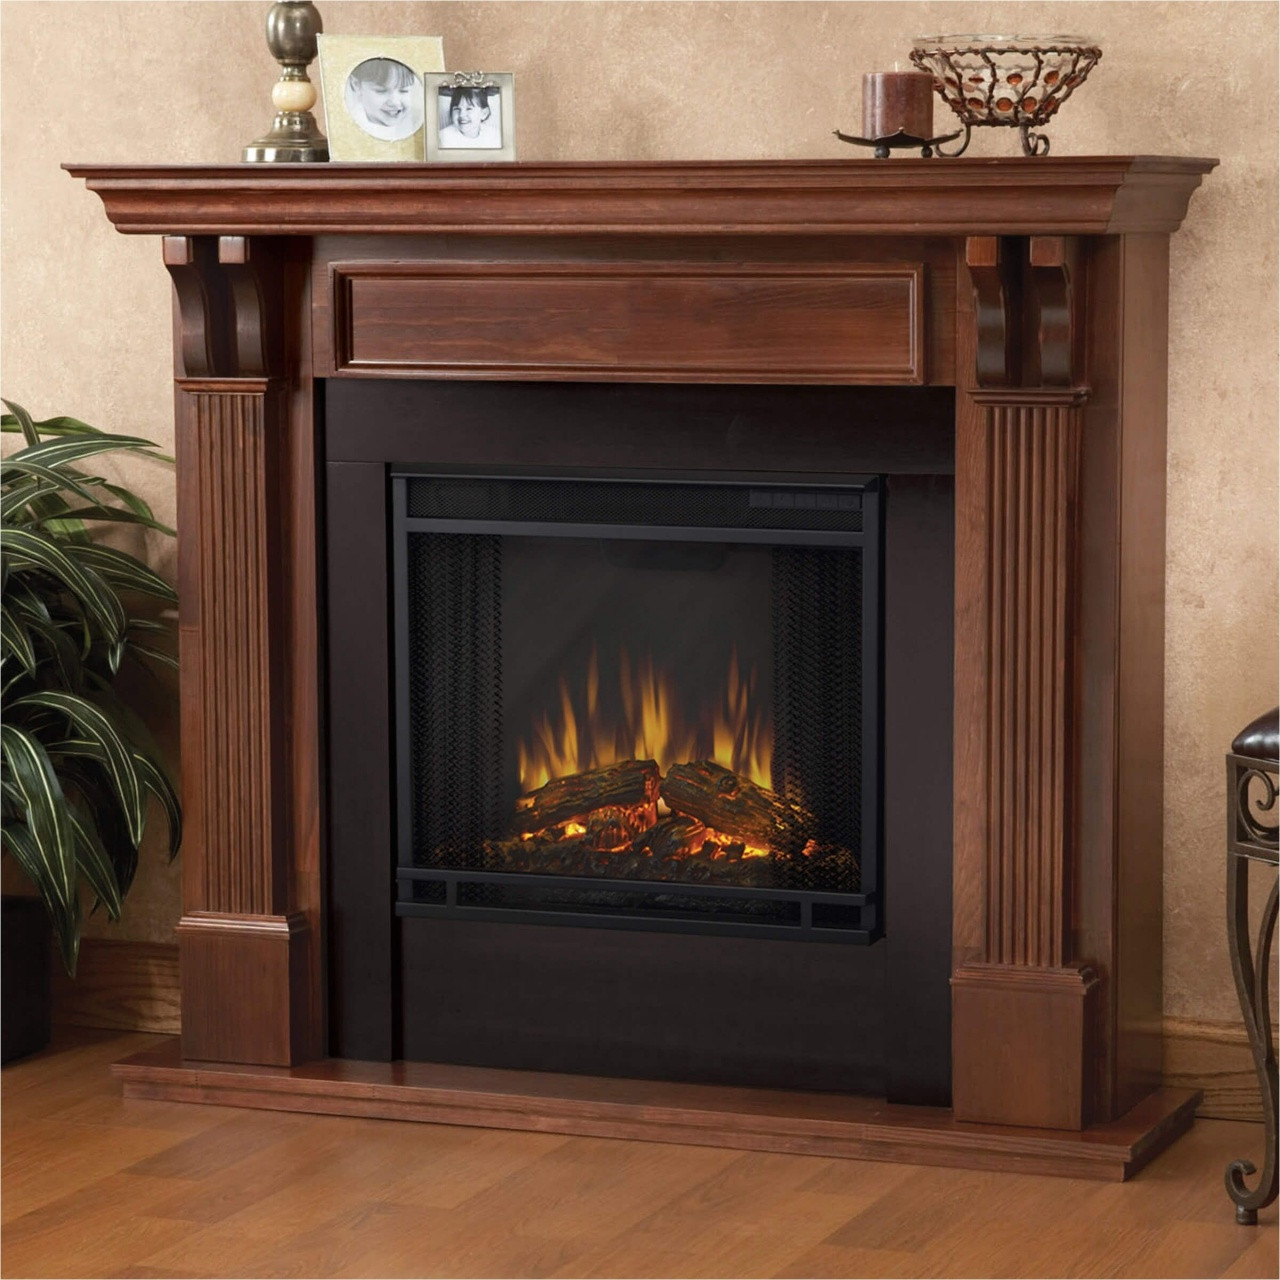 Electric Fireplace Tv Stand Menards  Menards Electric Fireplace Tv Stands – FIREPLACE IDEAS